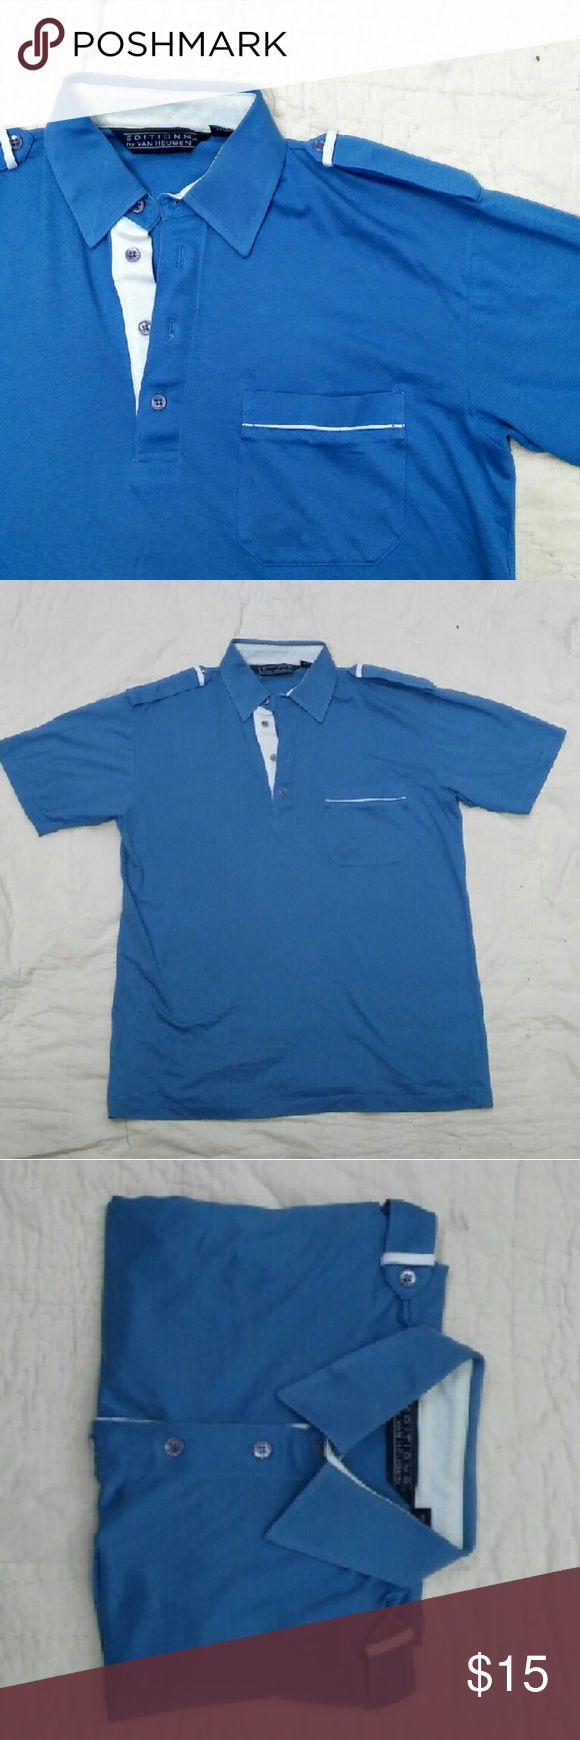 "MEN'S Van Heusen Golf Shirt Lightweight Blue Golf Shirt with Shoulder Lapels by Editions by Van Heusen. Men's Medium. In excellent used condition. From a smoke free home. Make an offer! SAVE on SHIPPING & get a DISCOUNT by making a BUNDLE! Get 20% off on 2+ items. 2for1 SCARF SALE: Buy one ""2for1"" scarf at full price and get another scarf of equal or lesser value for free! Purchase the first scarf, comment on the second scarf, & I'll ship both! Van Heusen Shirts"